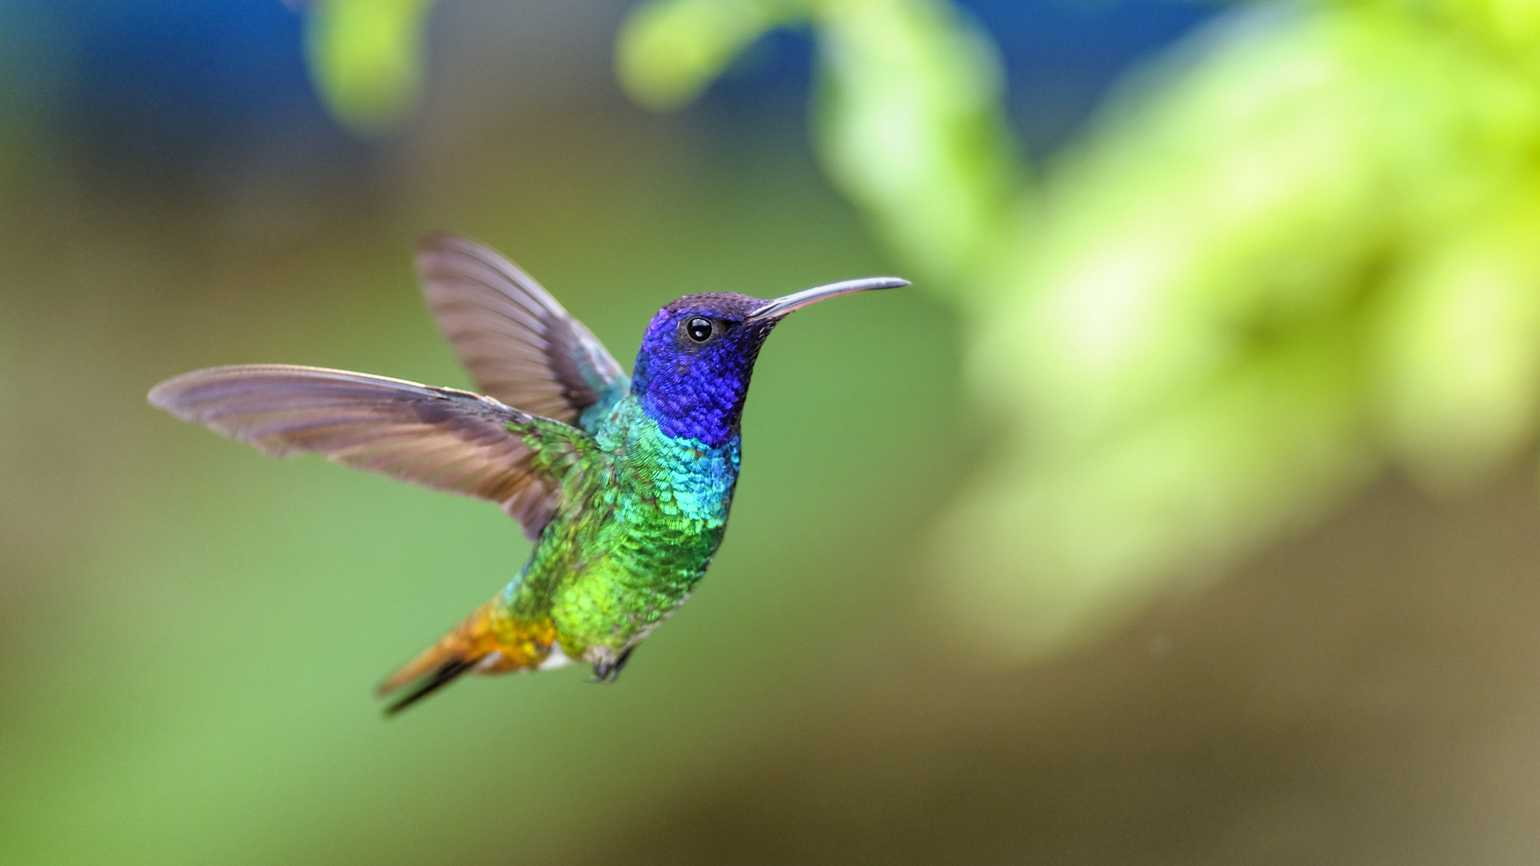 A colorful hummingbird.